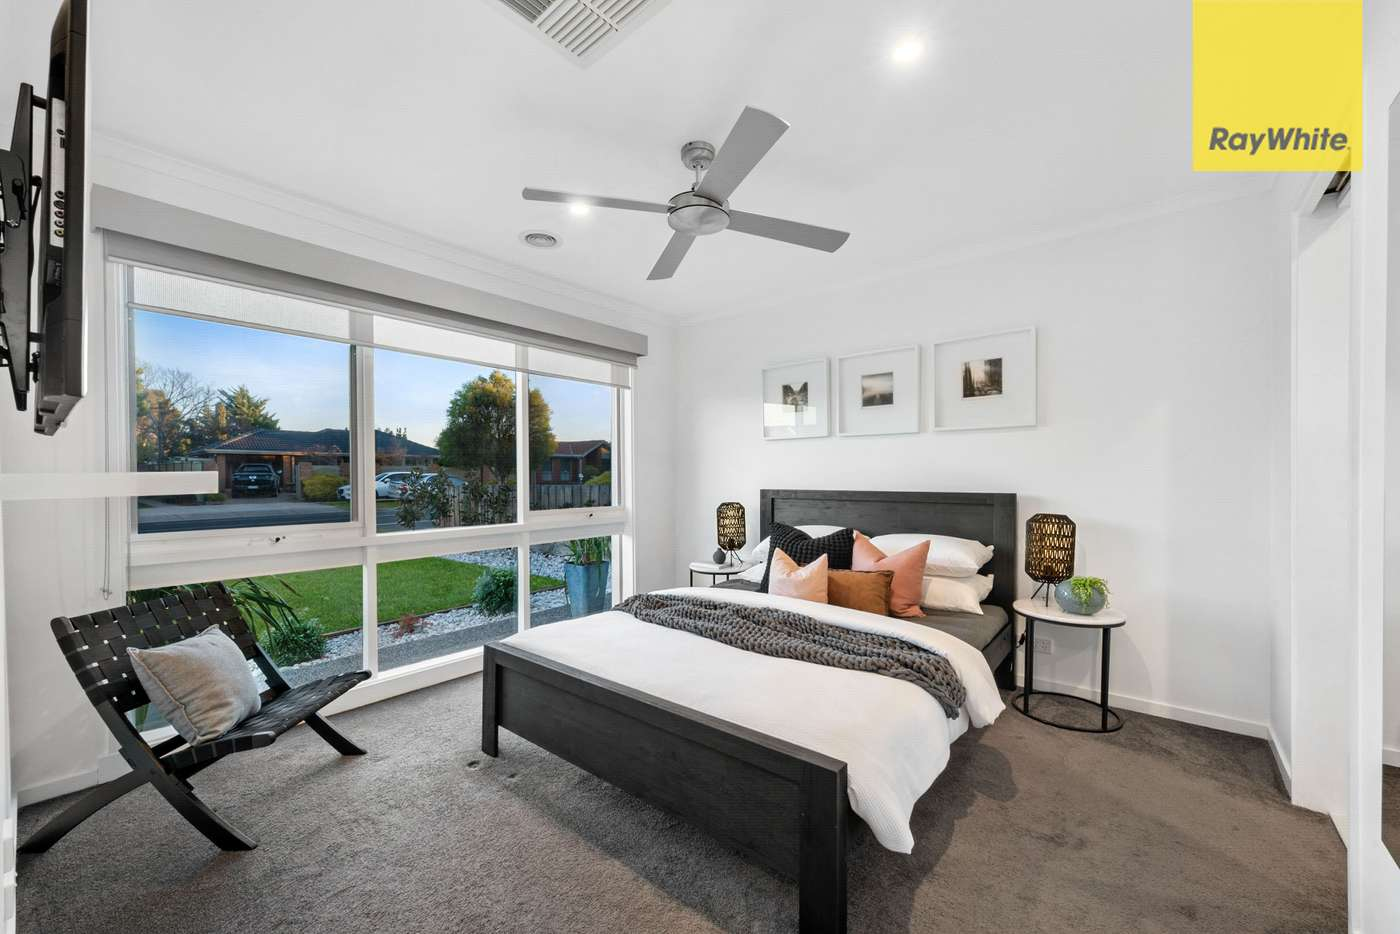 Fifth view of Homely house listing, 20 Lady Nelson Way, Taylors Lakes VIC 3038